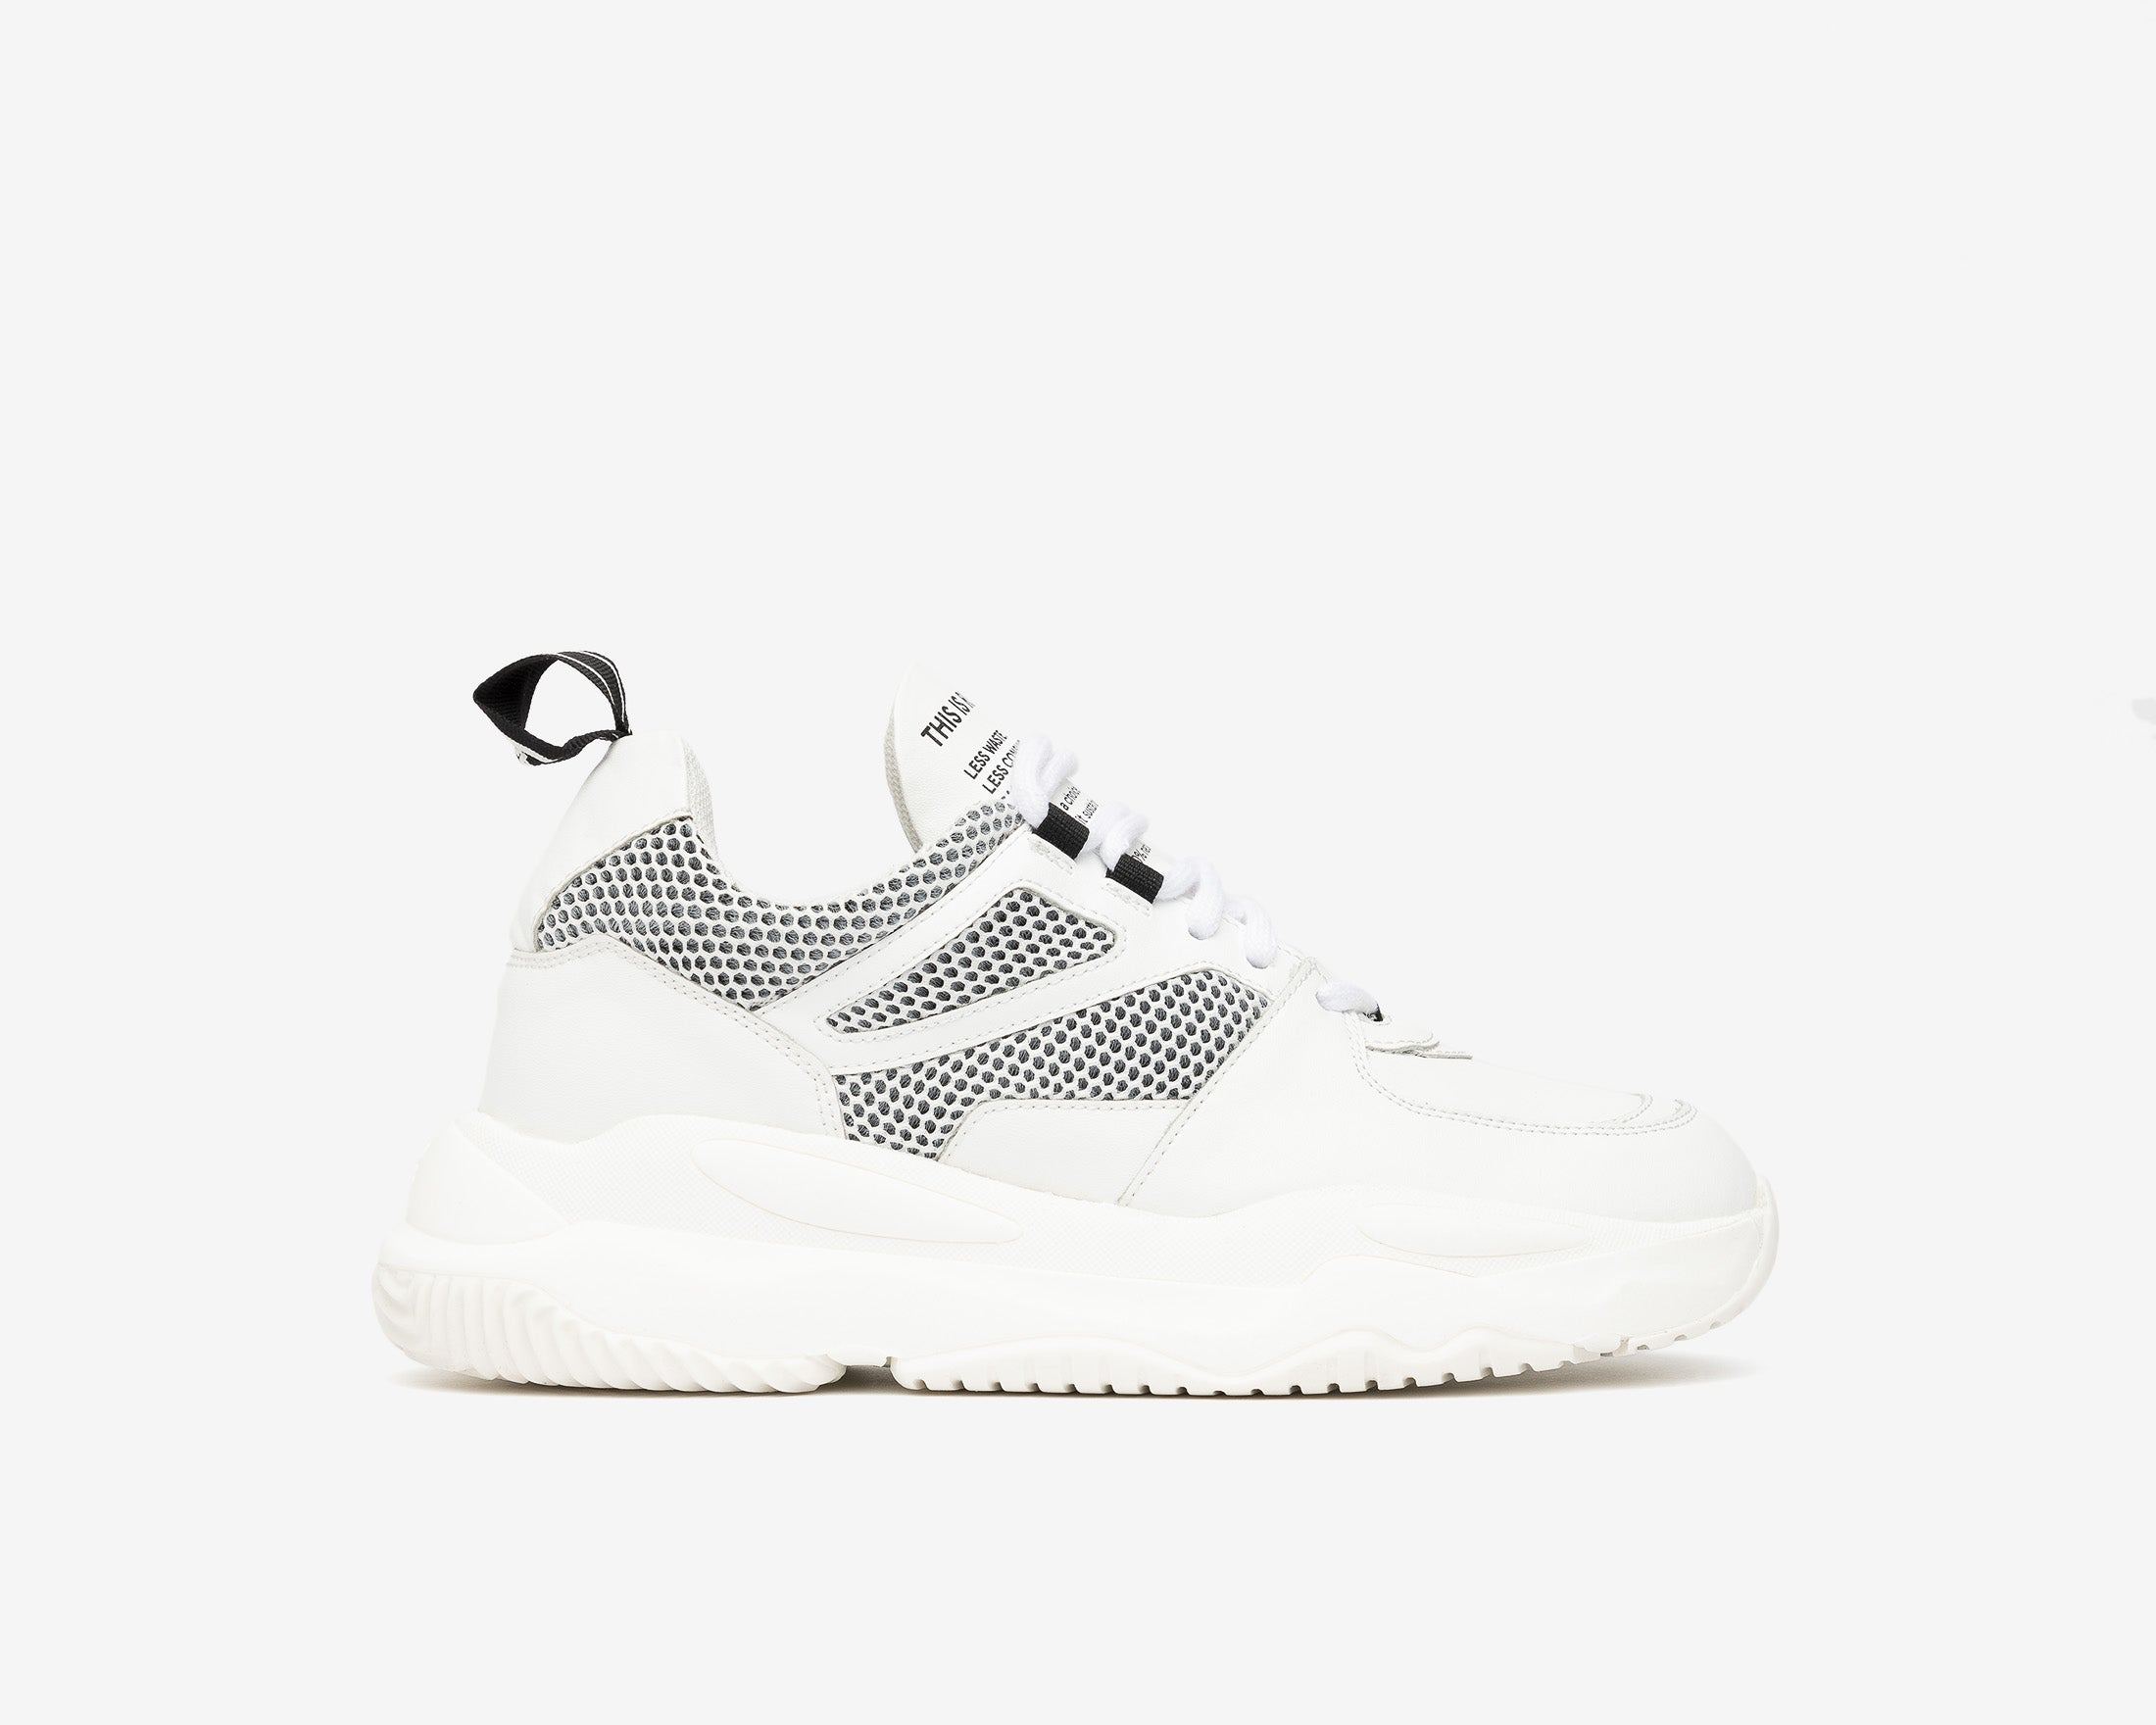 Luke Chunky Sneaker in WhiteR Recycled Leather - Profile